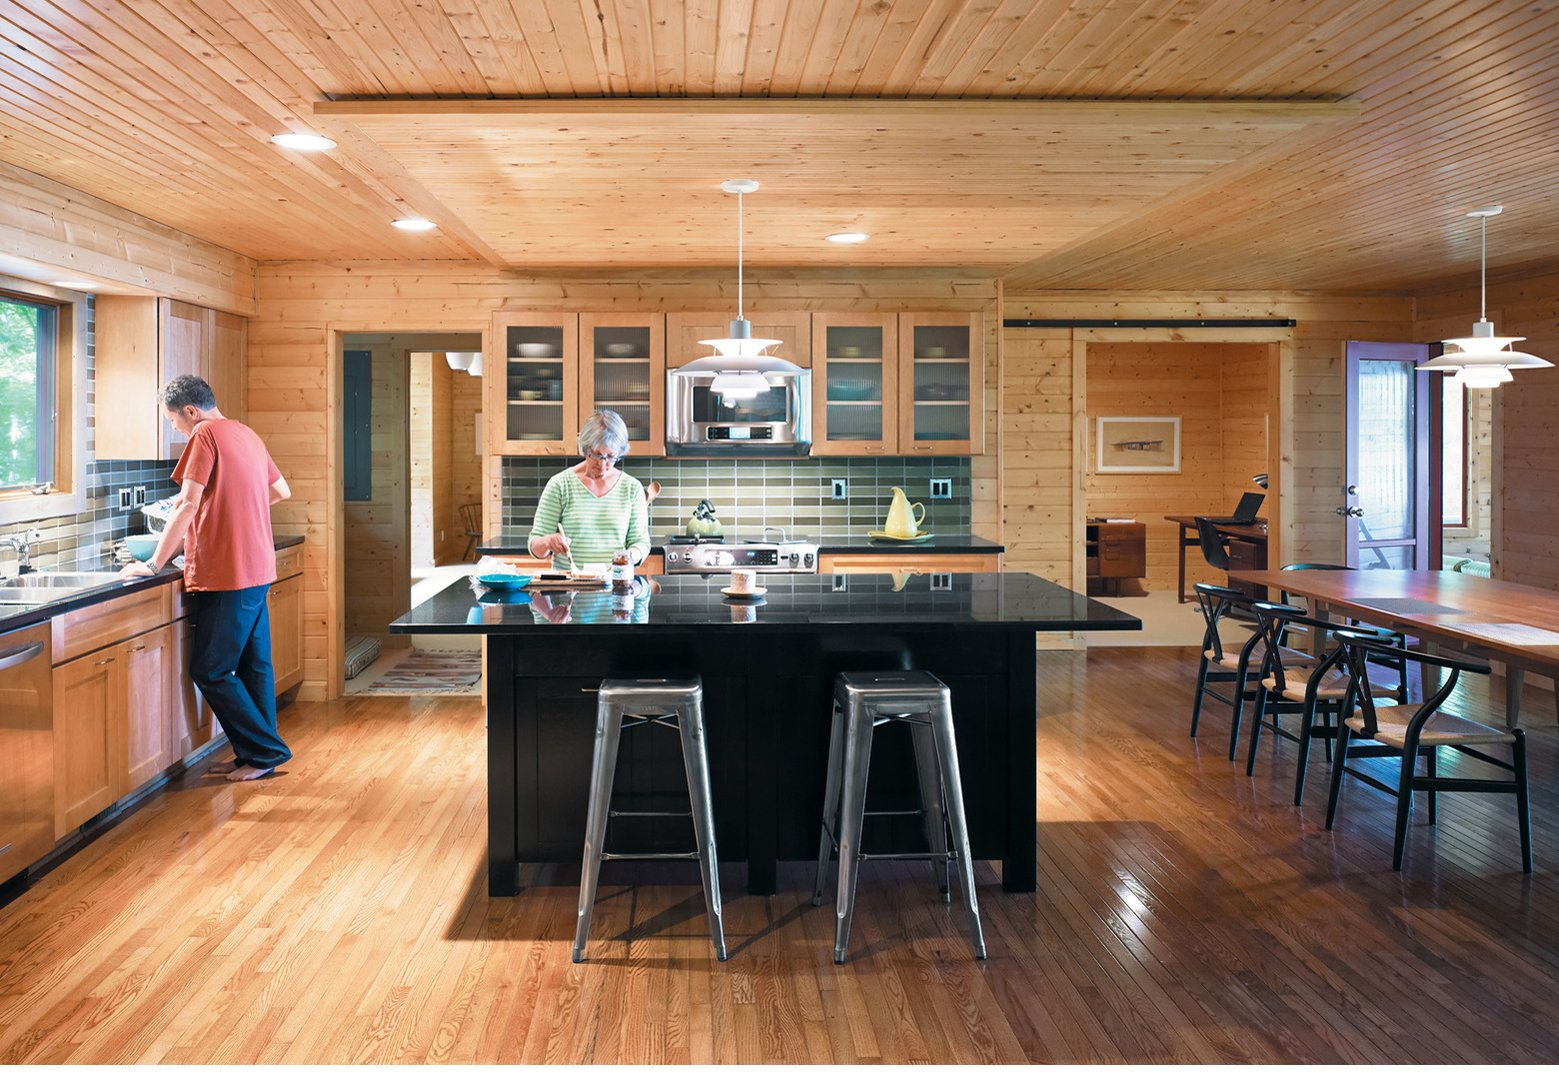 A Ranch House Kitchen RenovationFor their   lakeside retreat in northwestern Michigan, Keith and Mary Campbell renovated a 1970s ranch house to include a spacious kitchen-dining room.  Photo 1 of 1 in A Ranch House Kitchen Renovation